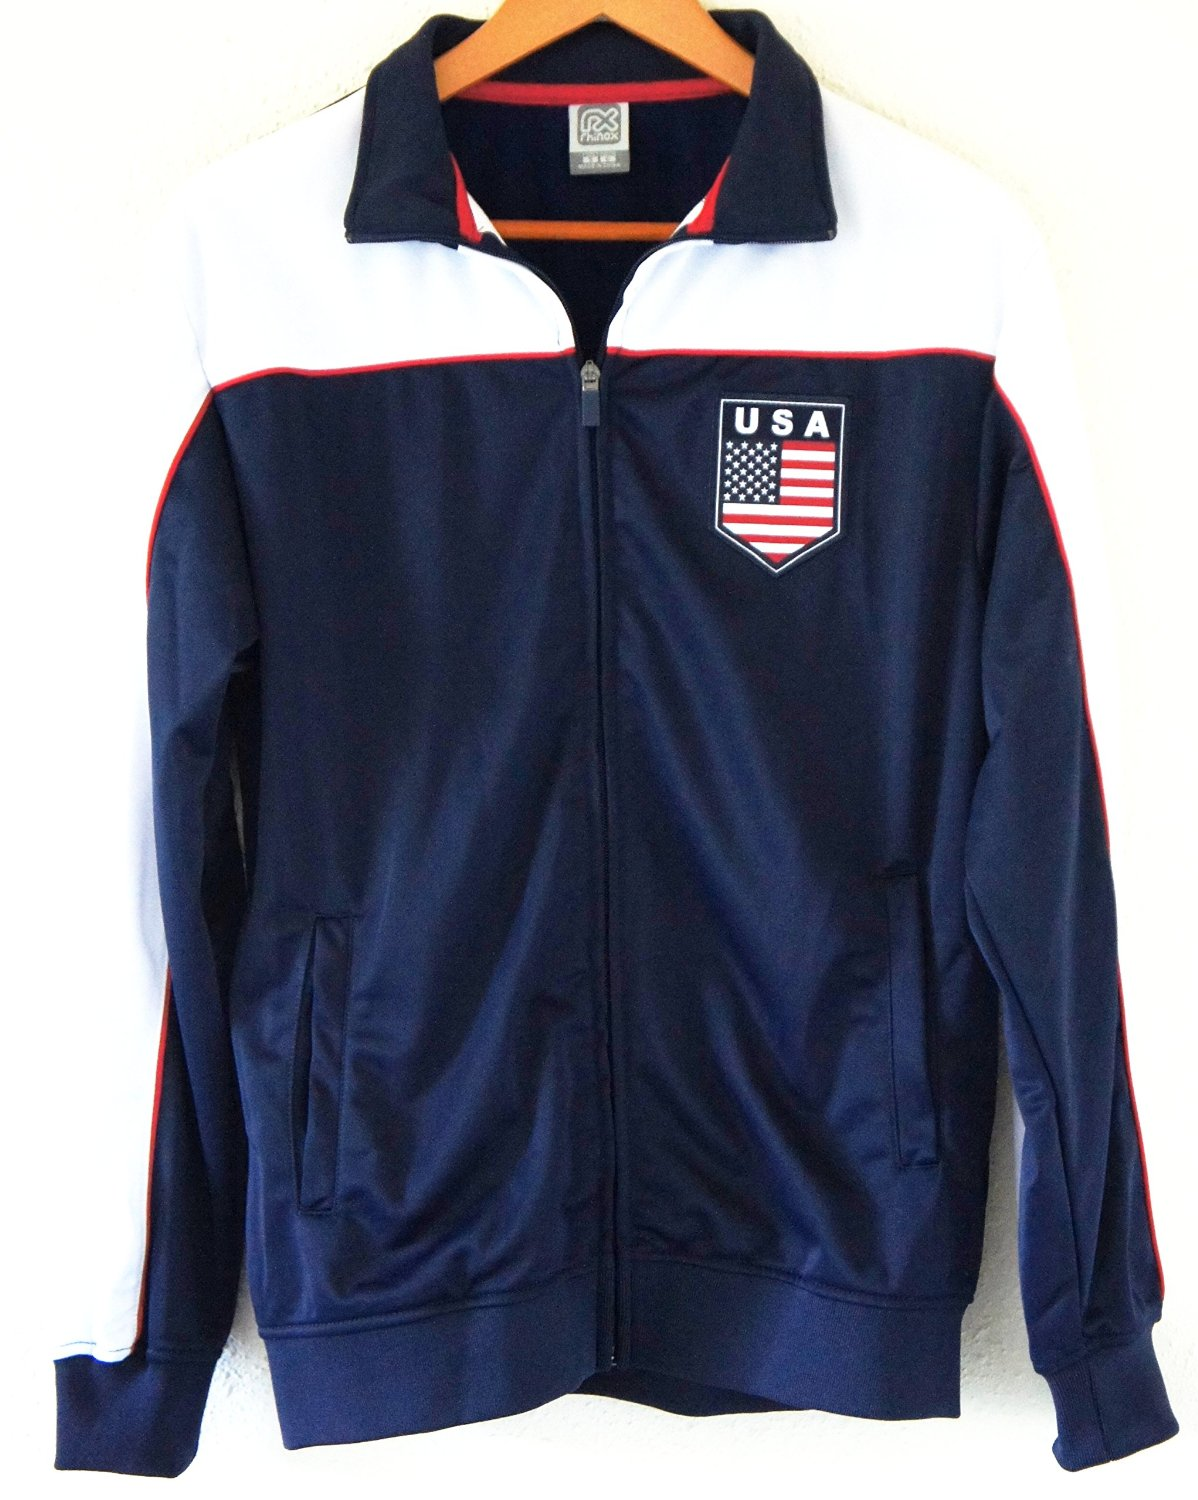 01bfc3dd66e Get Quotations · Soccer Team USA Adult Fashion Soccer Track Jacket NAVY